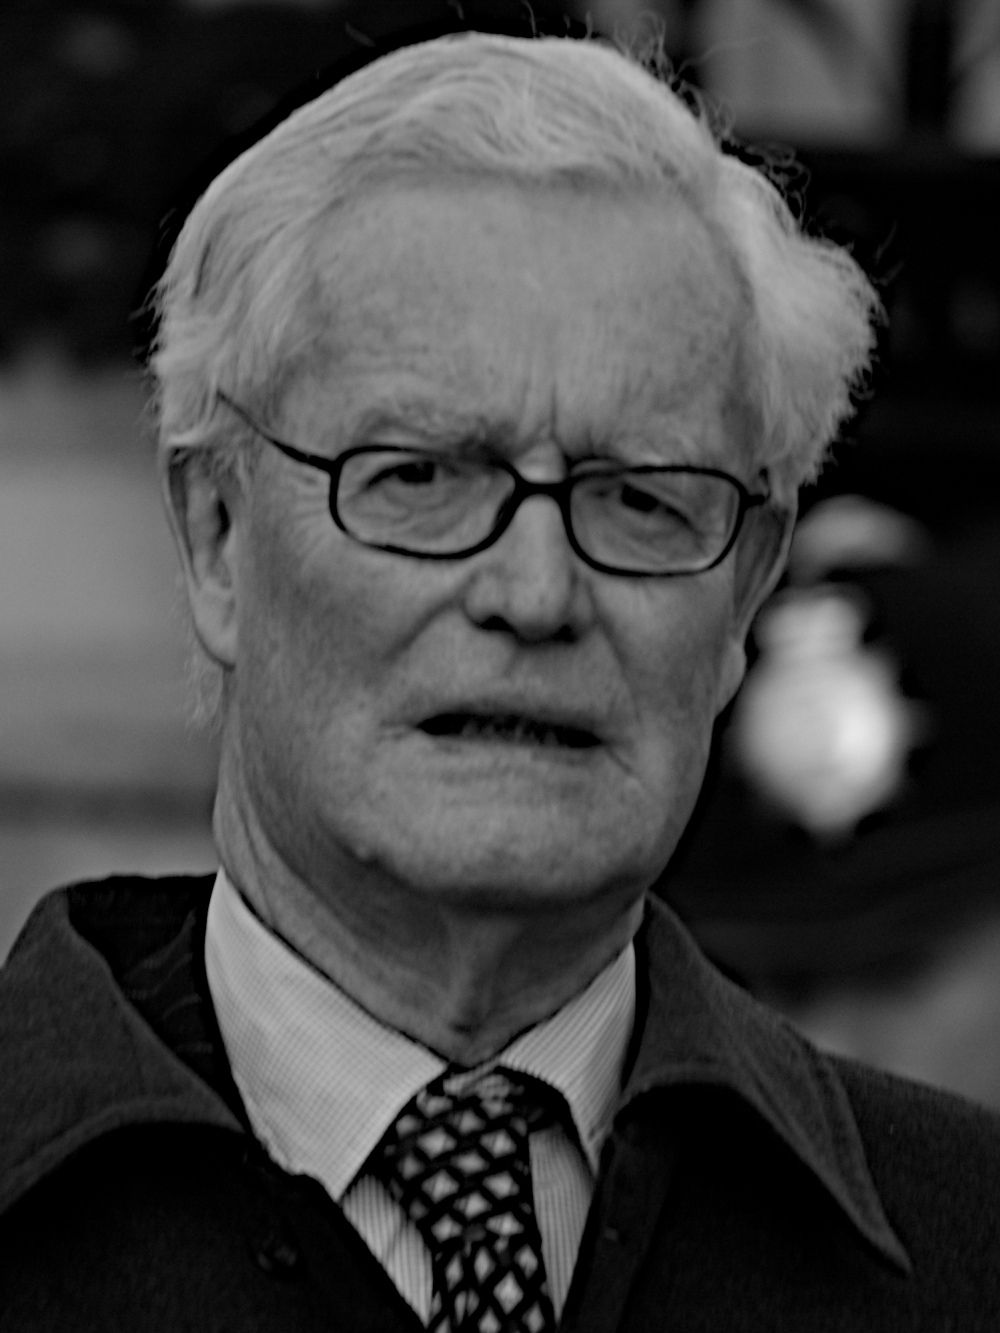 File:Douglas Hurd, November 2007 cropped.jpg - Wikipedia, the free ...